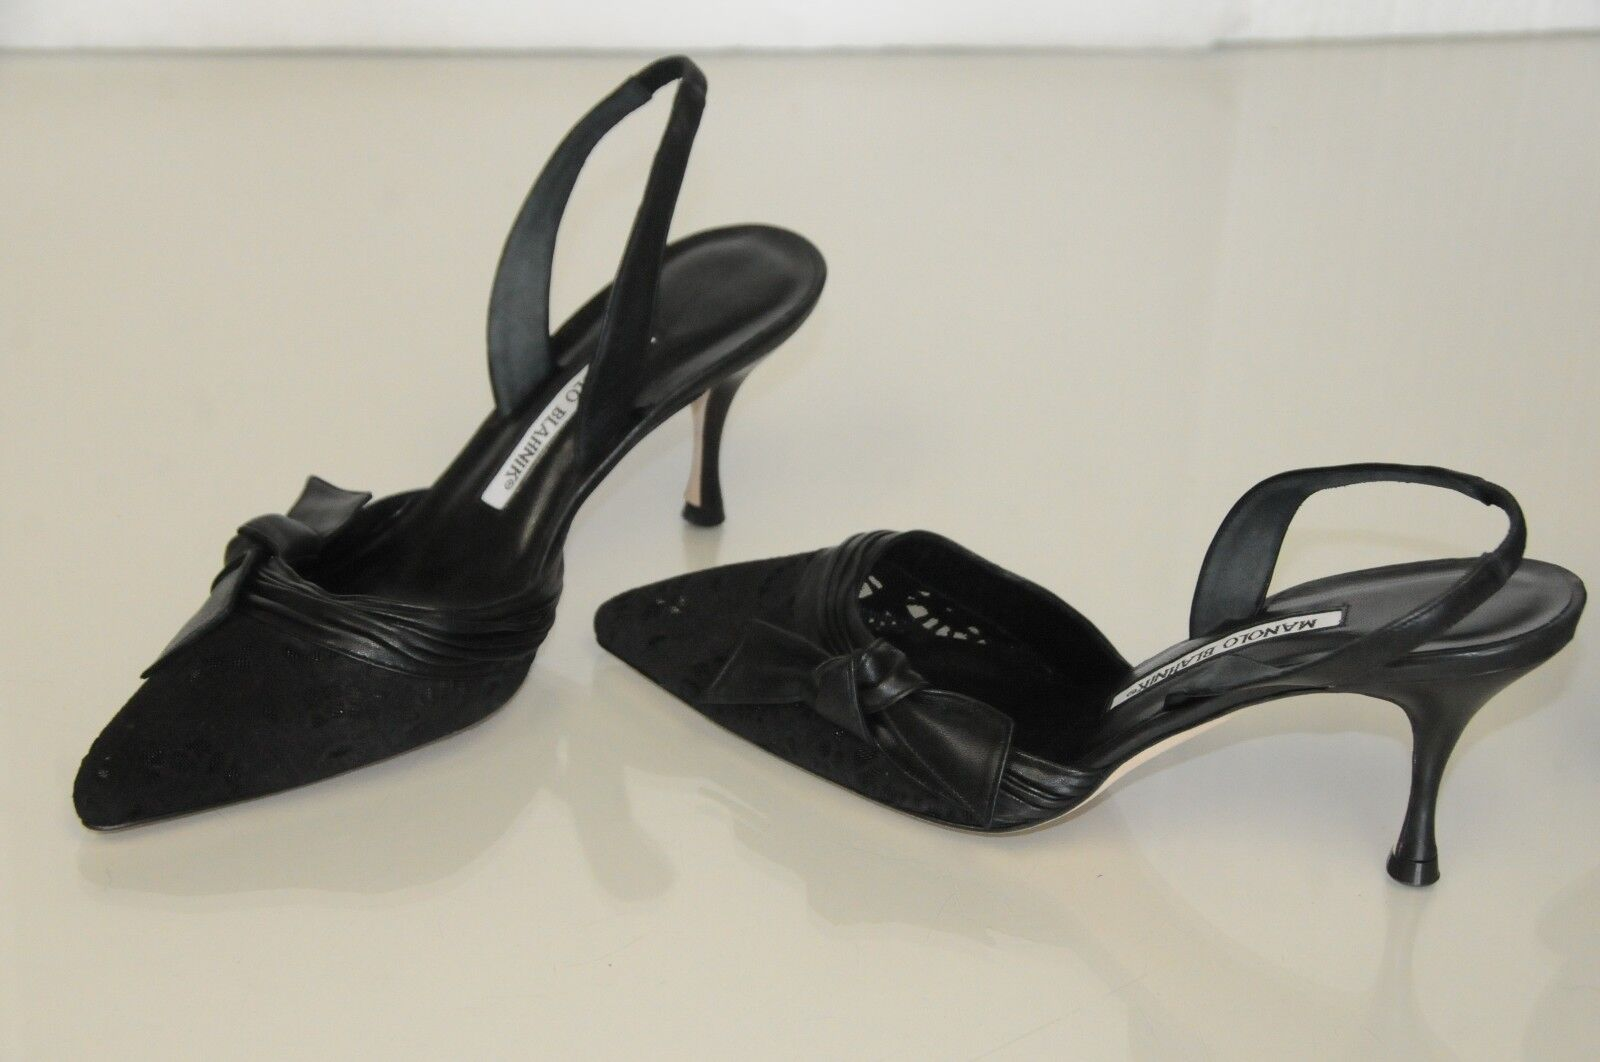 NEW MANOLO BLAHNIK CAROLYNE PUMPS LASER SUEDE on Mesh BLACK BLACK Mesh LEATHER BOW SHOES 37 287dac